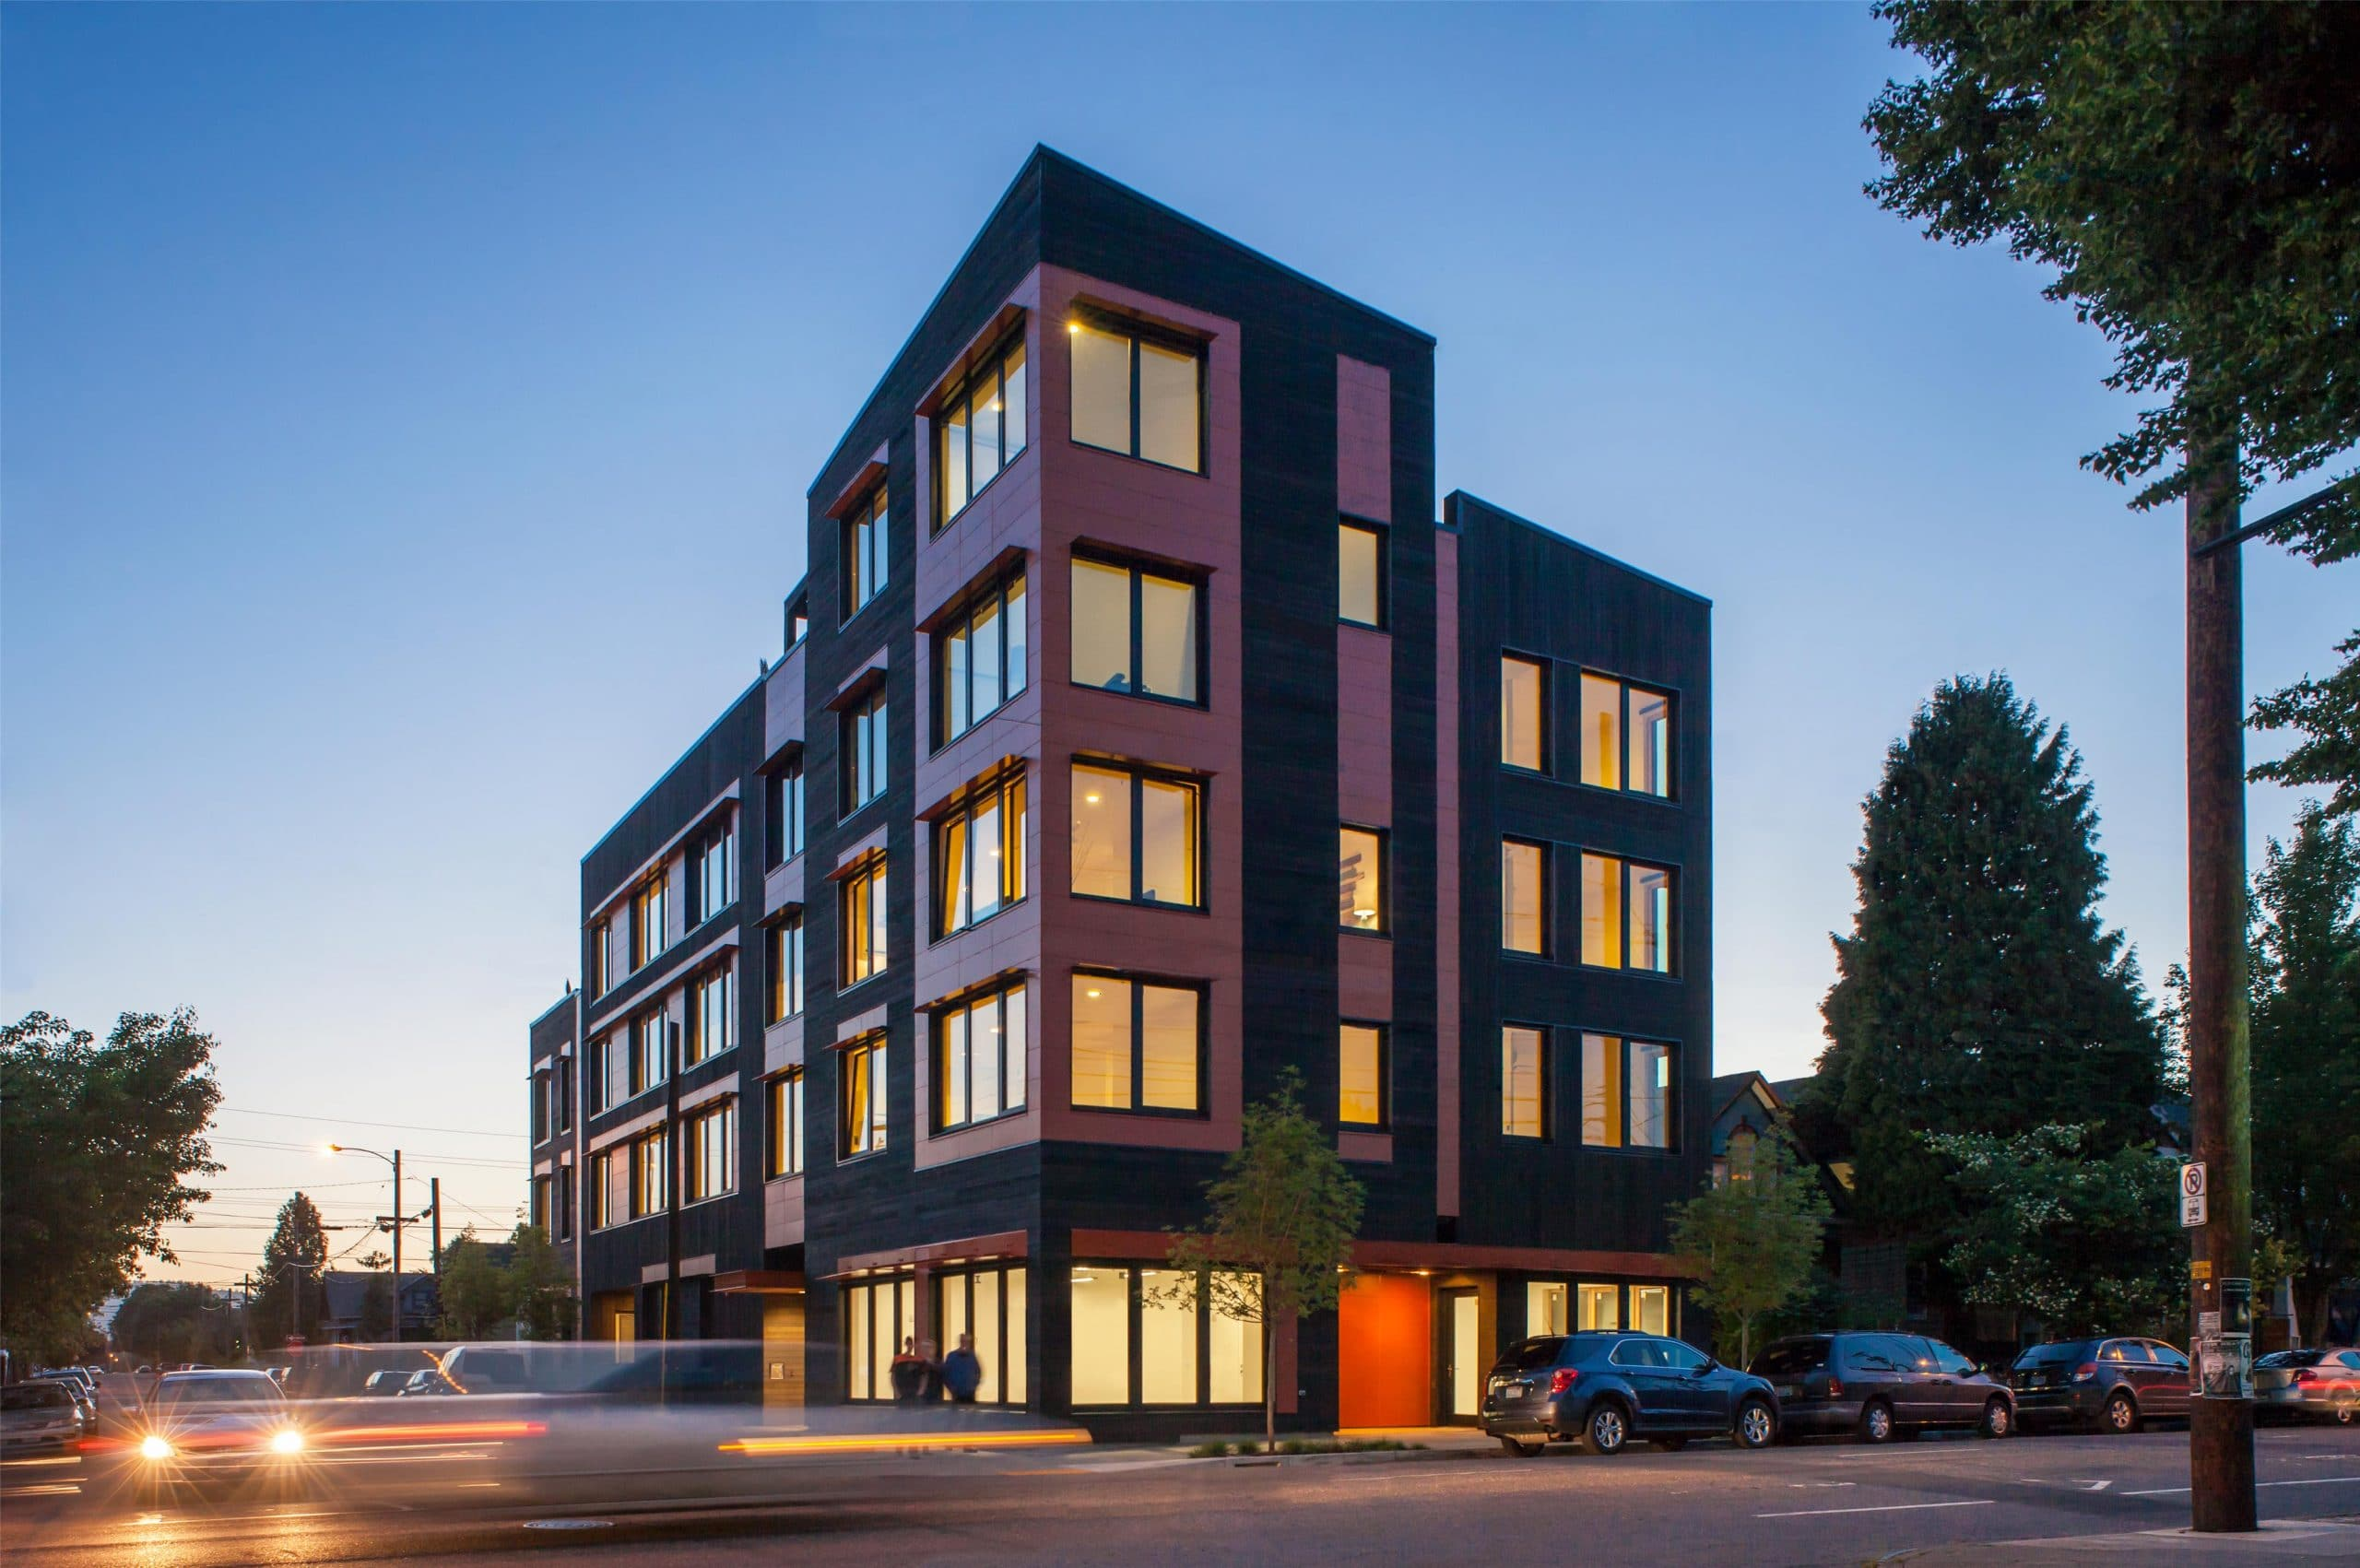 How to Calculate Unit Square Footage for an apartment building when all you have is the total building SF